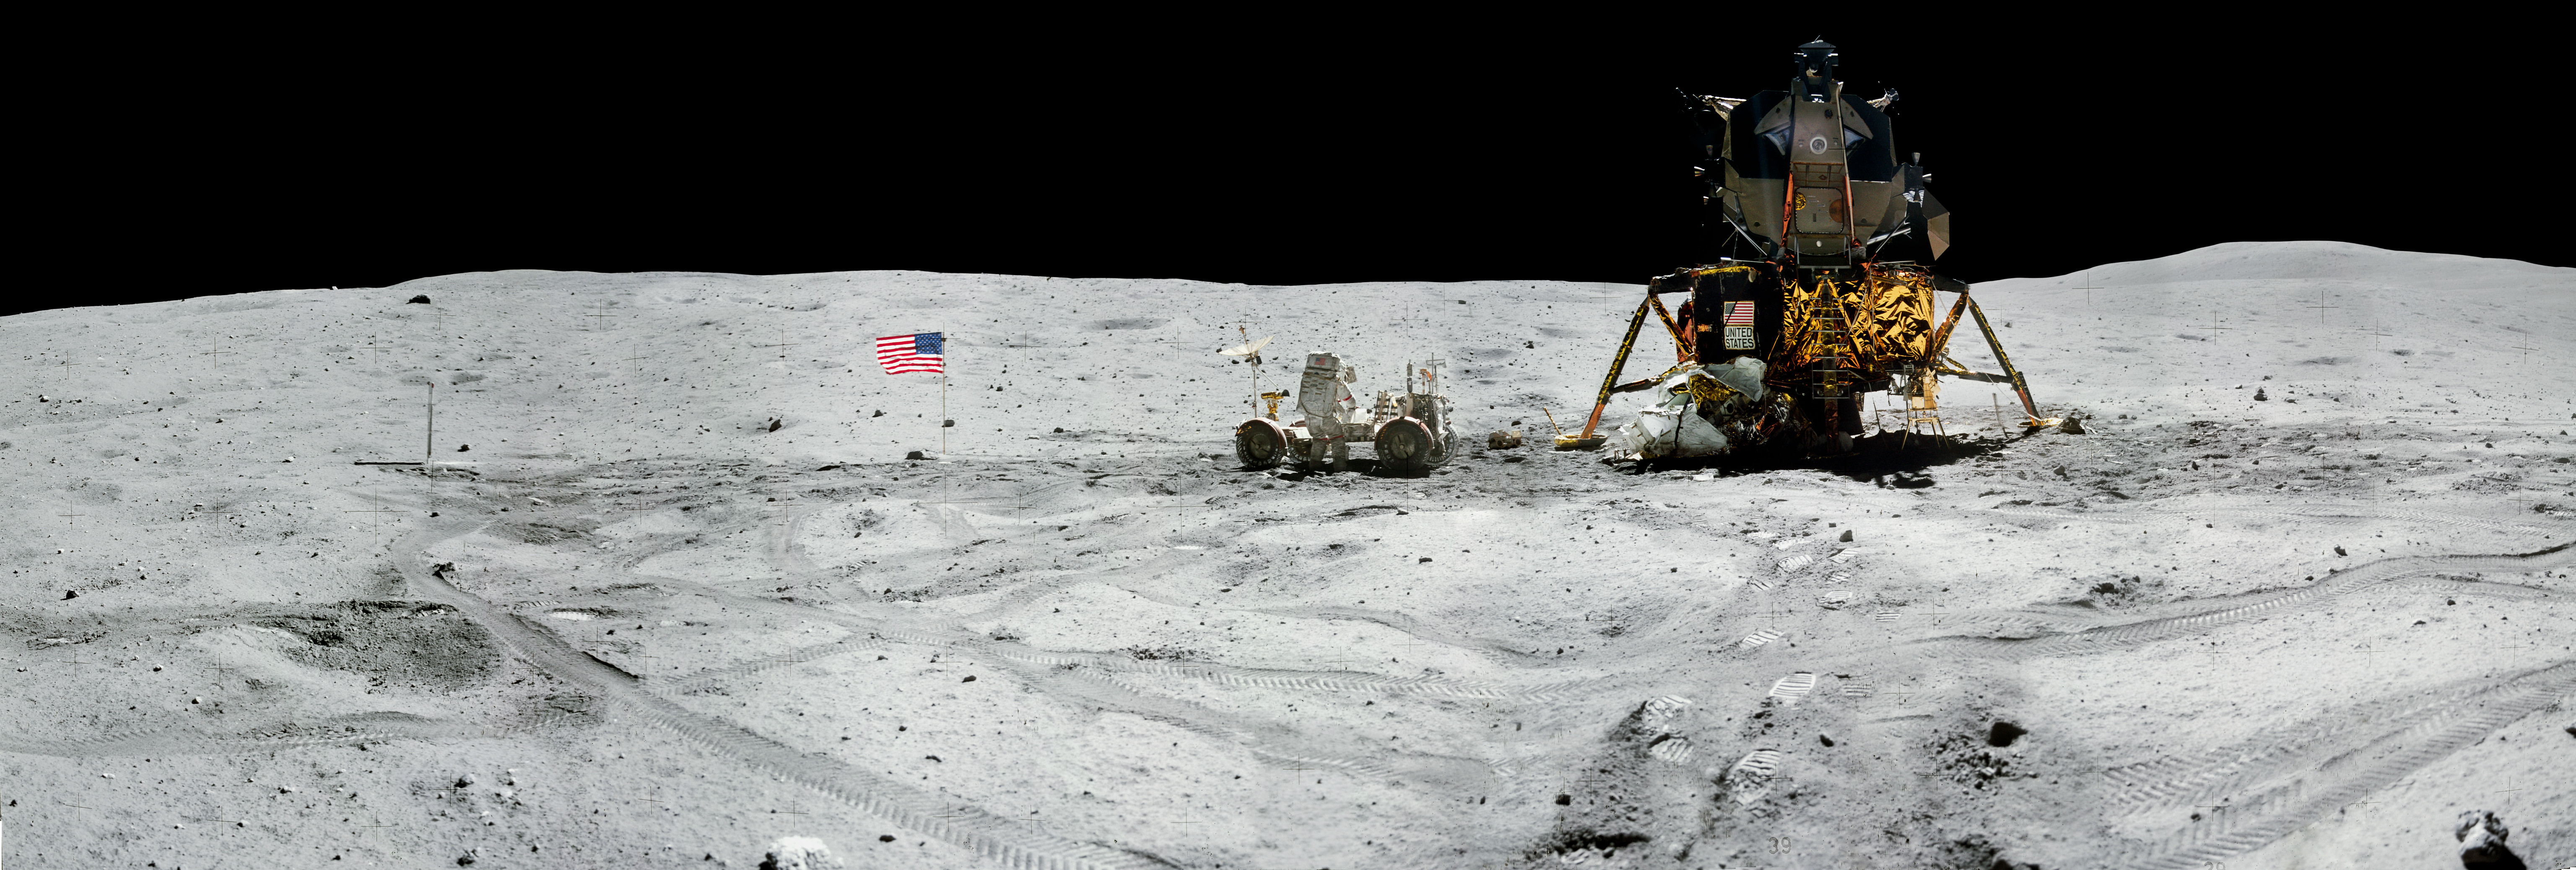 This Month in NASA History: NASA's Fifth Moon Landing - APPEL Knowledge Services